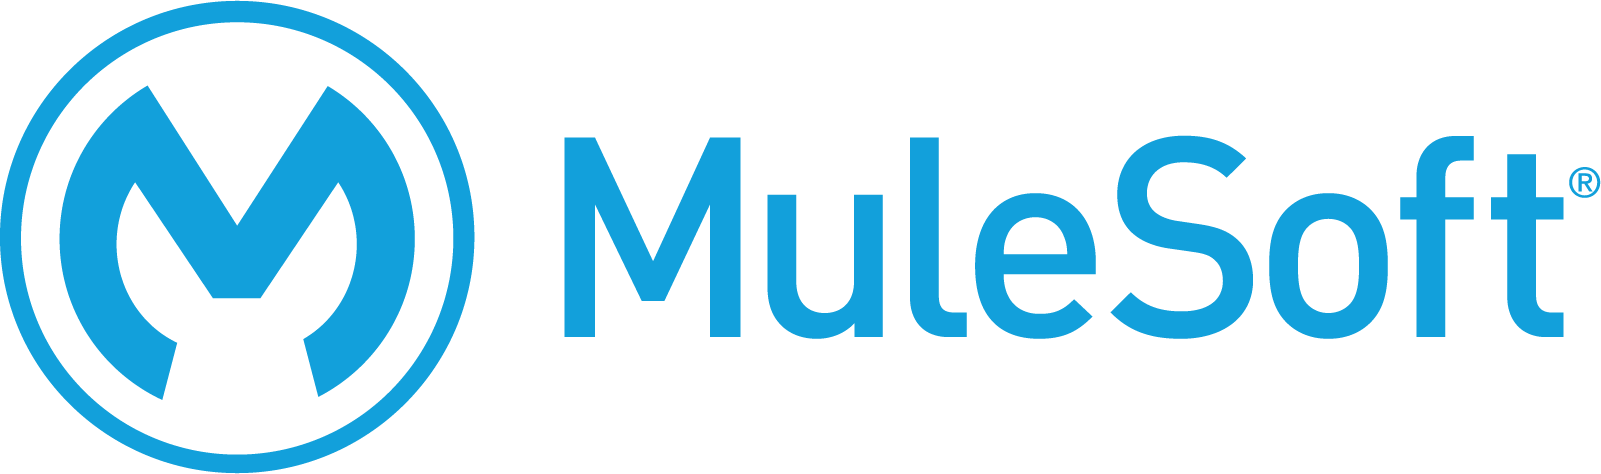 Logo for Mulesoft